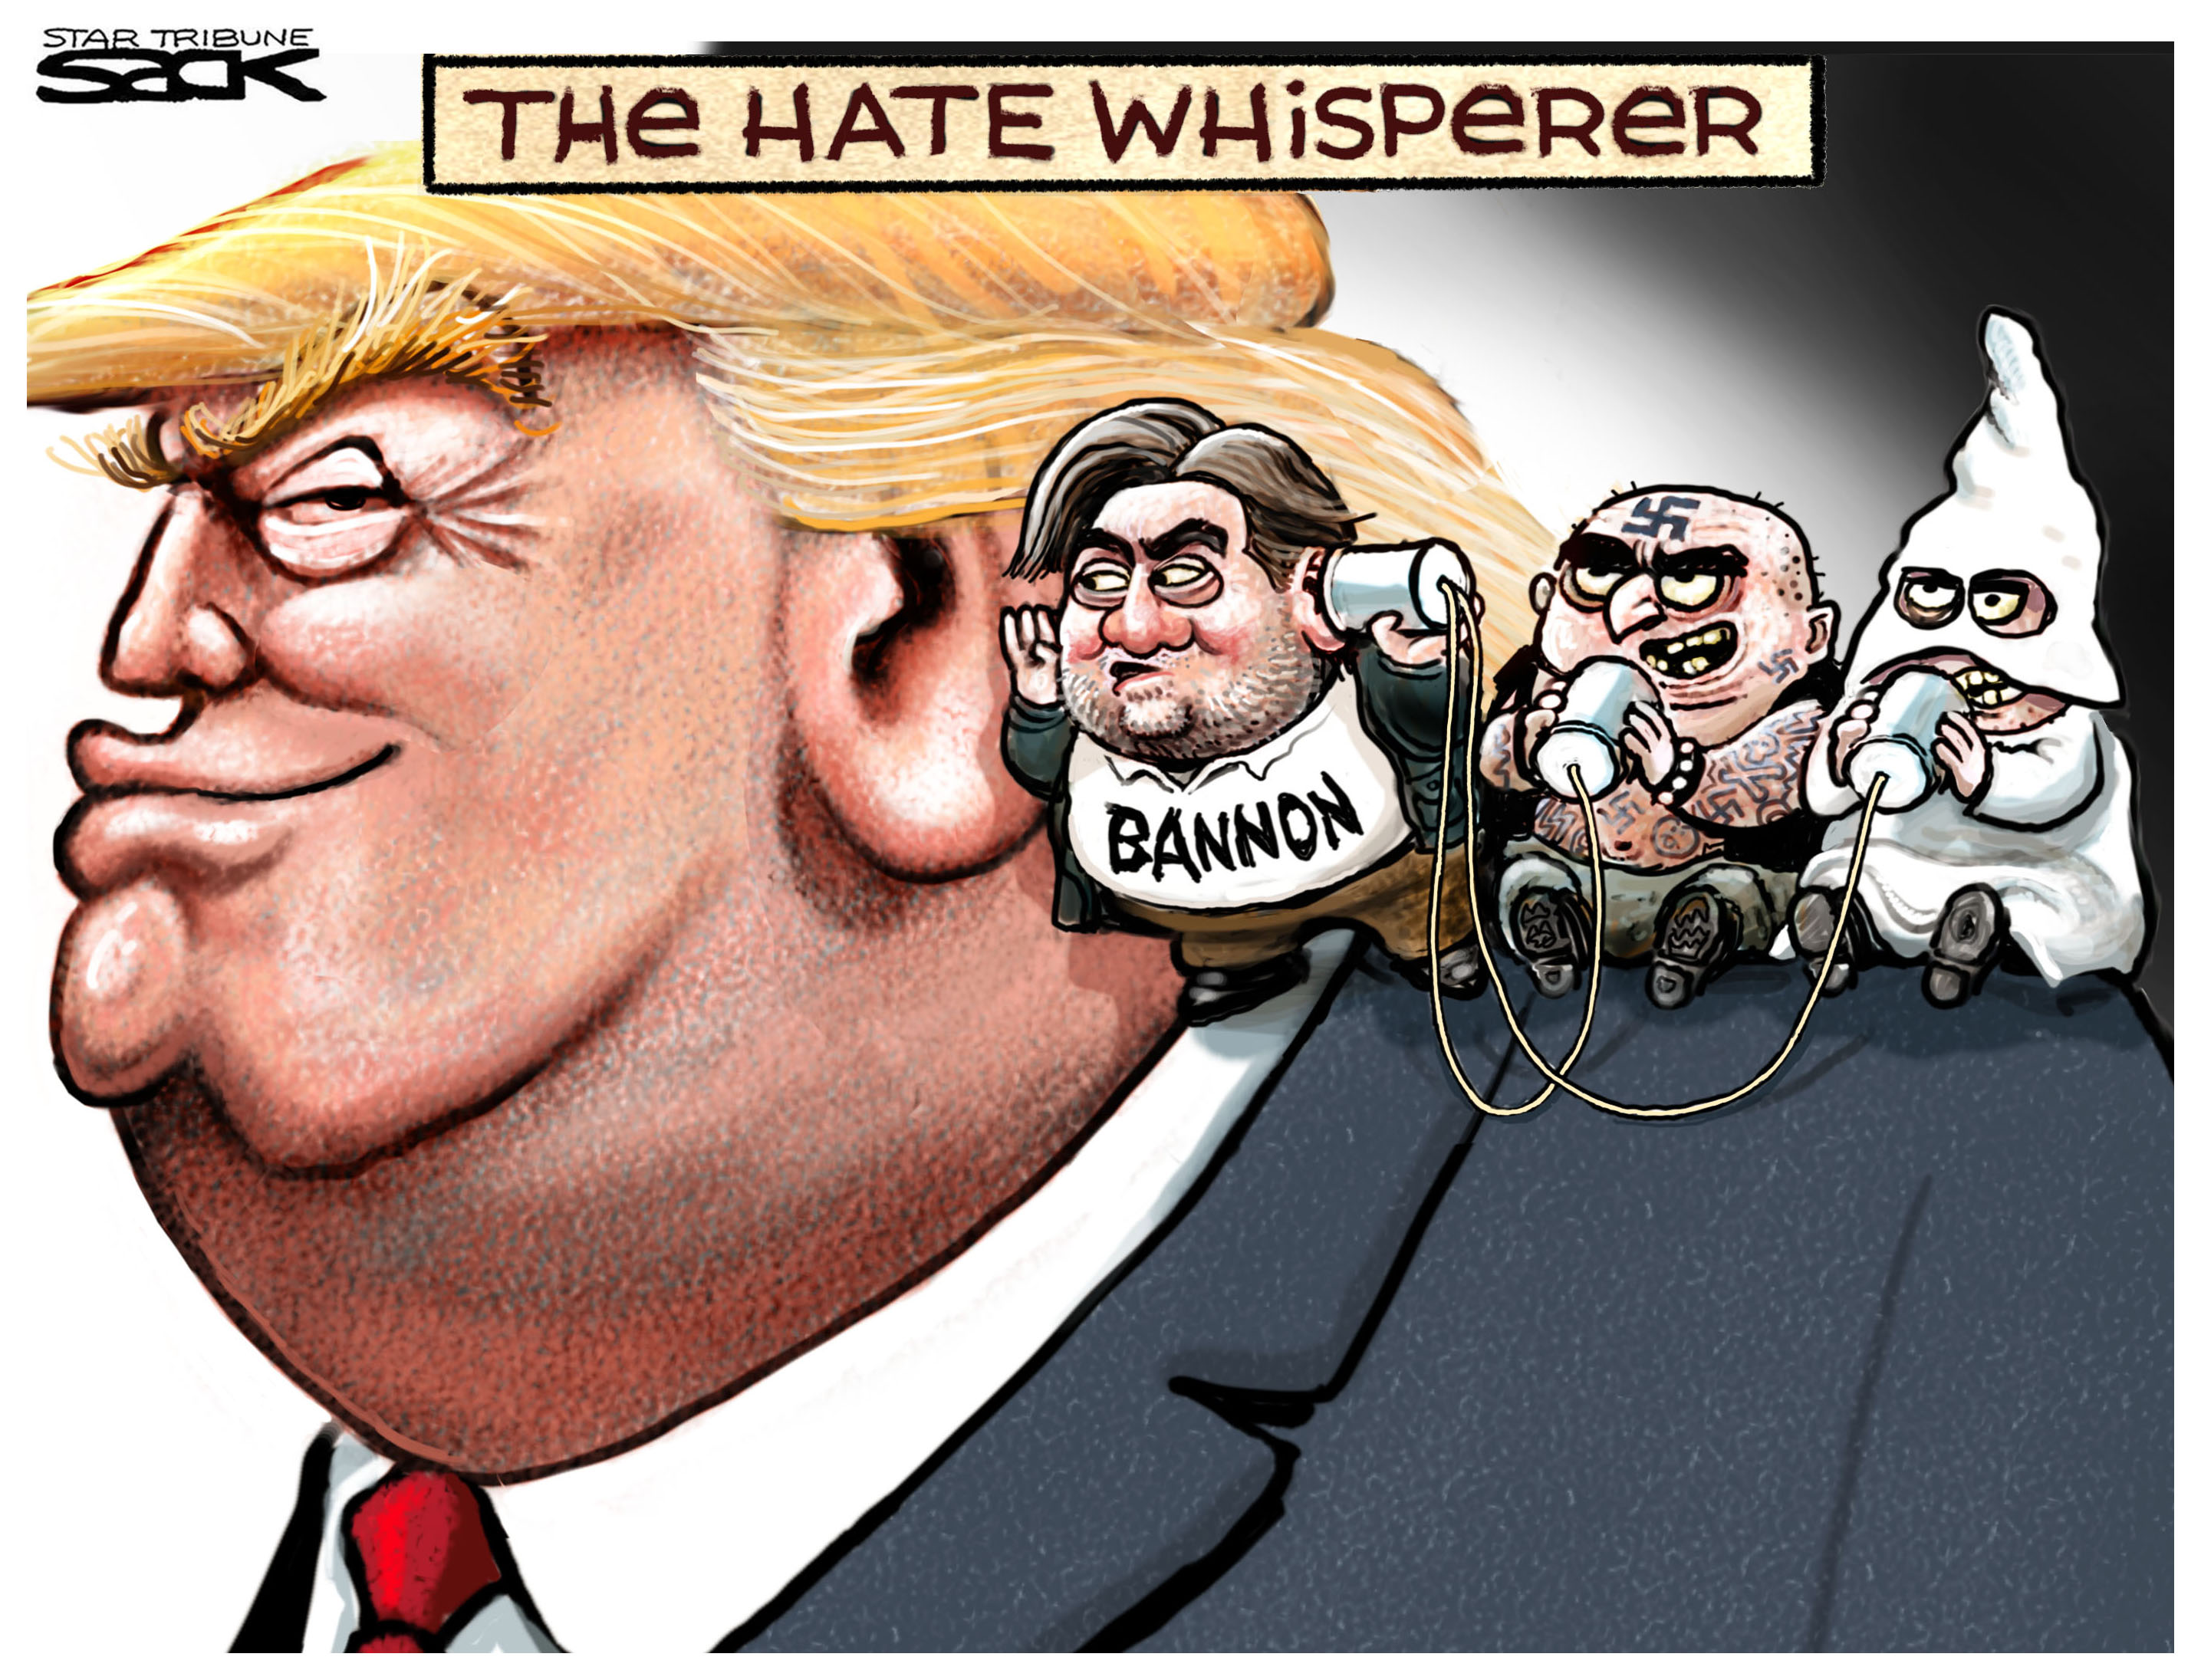 United States President Donald Trump, his adviser Steve Bannon, neonazis and the Ku Klux Klan, cartoon